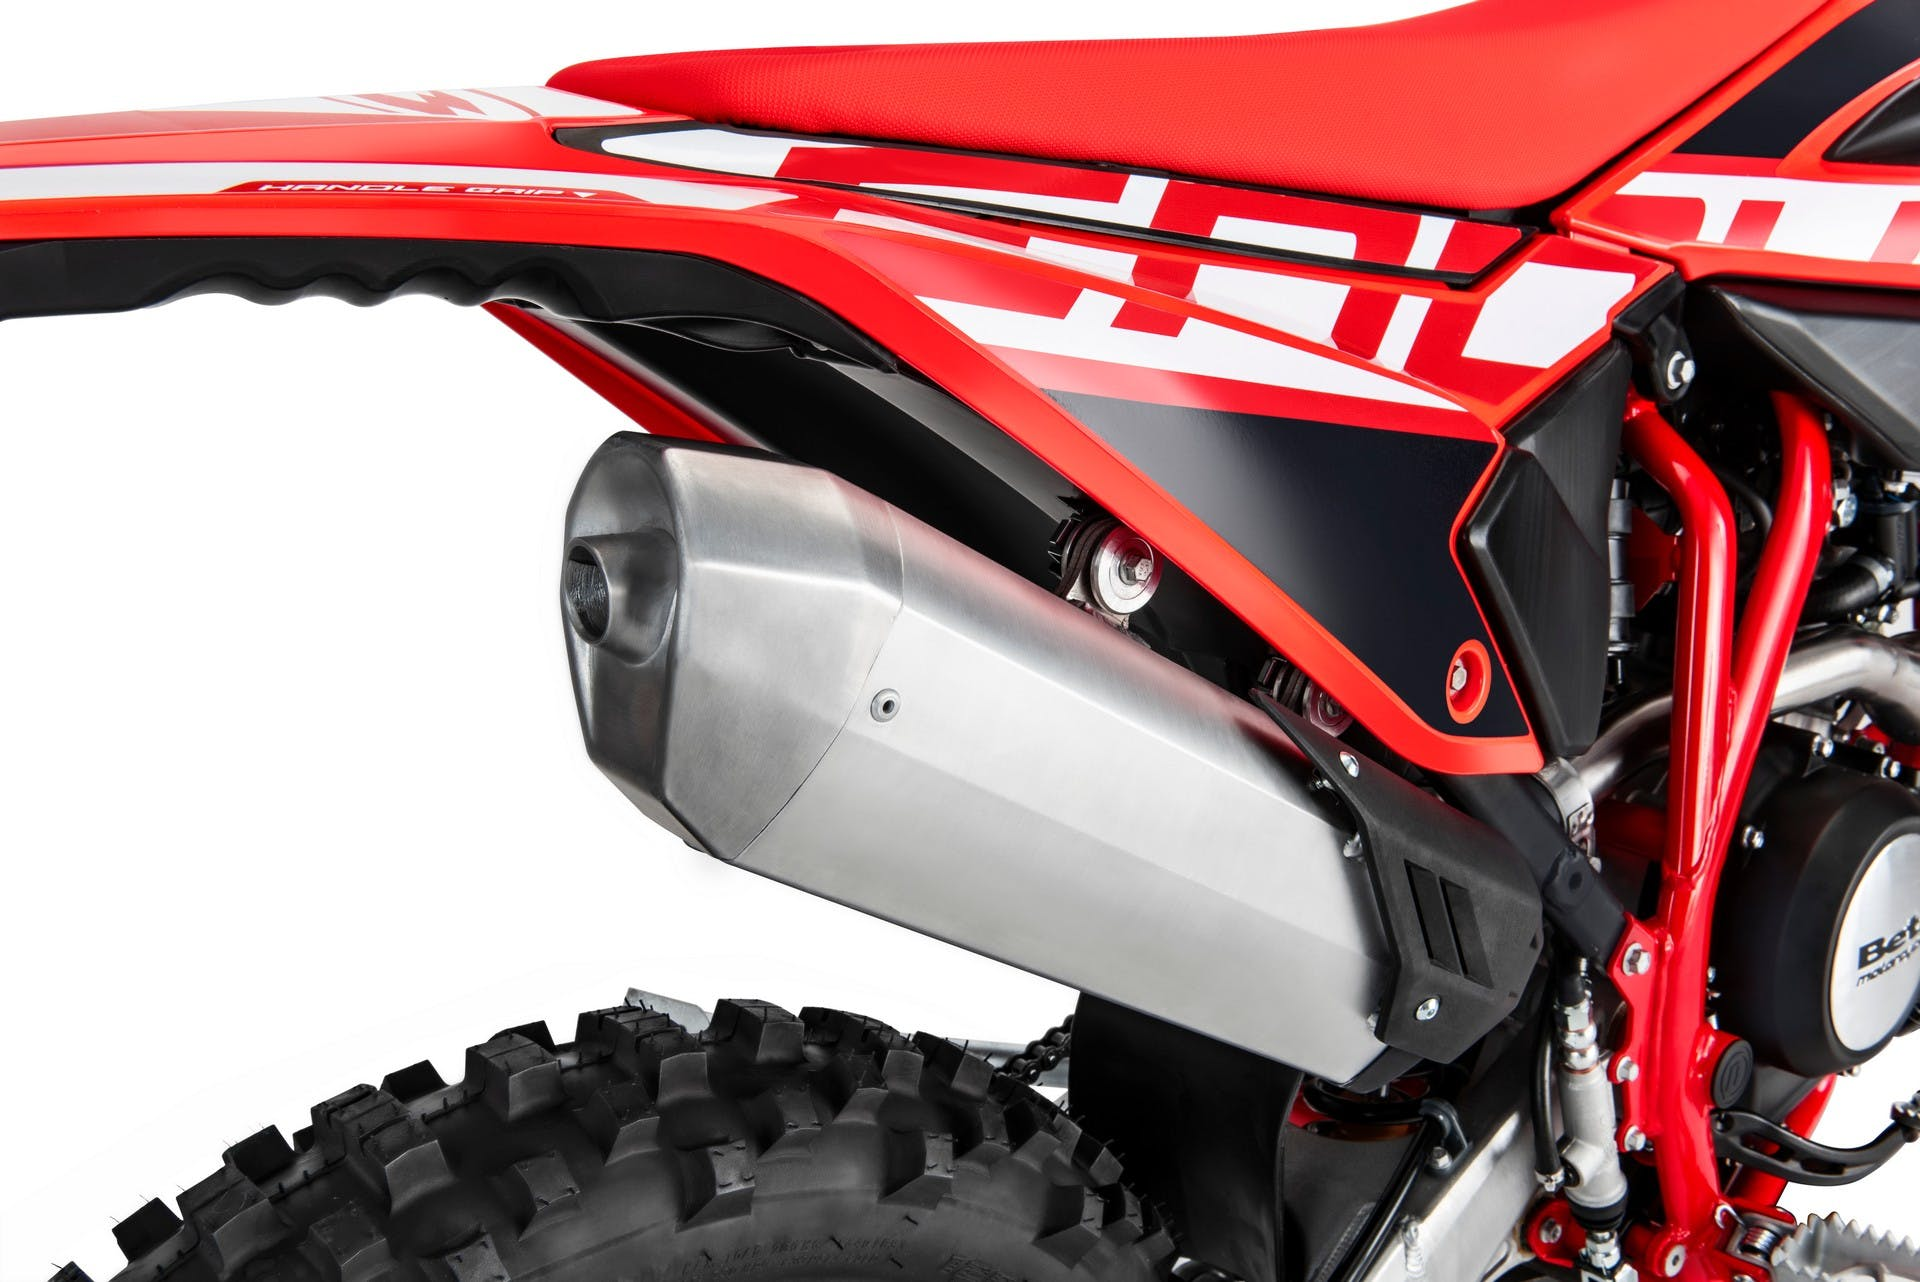 Beta RR 125 LC 2021 Enduro